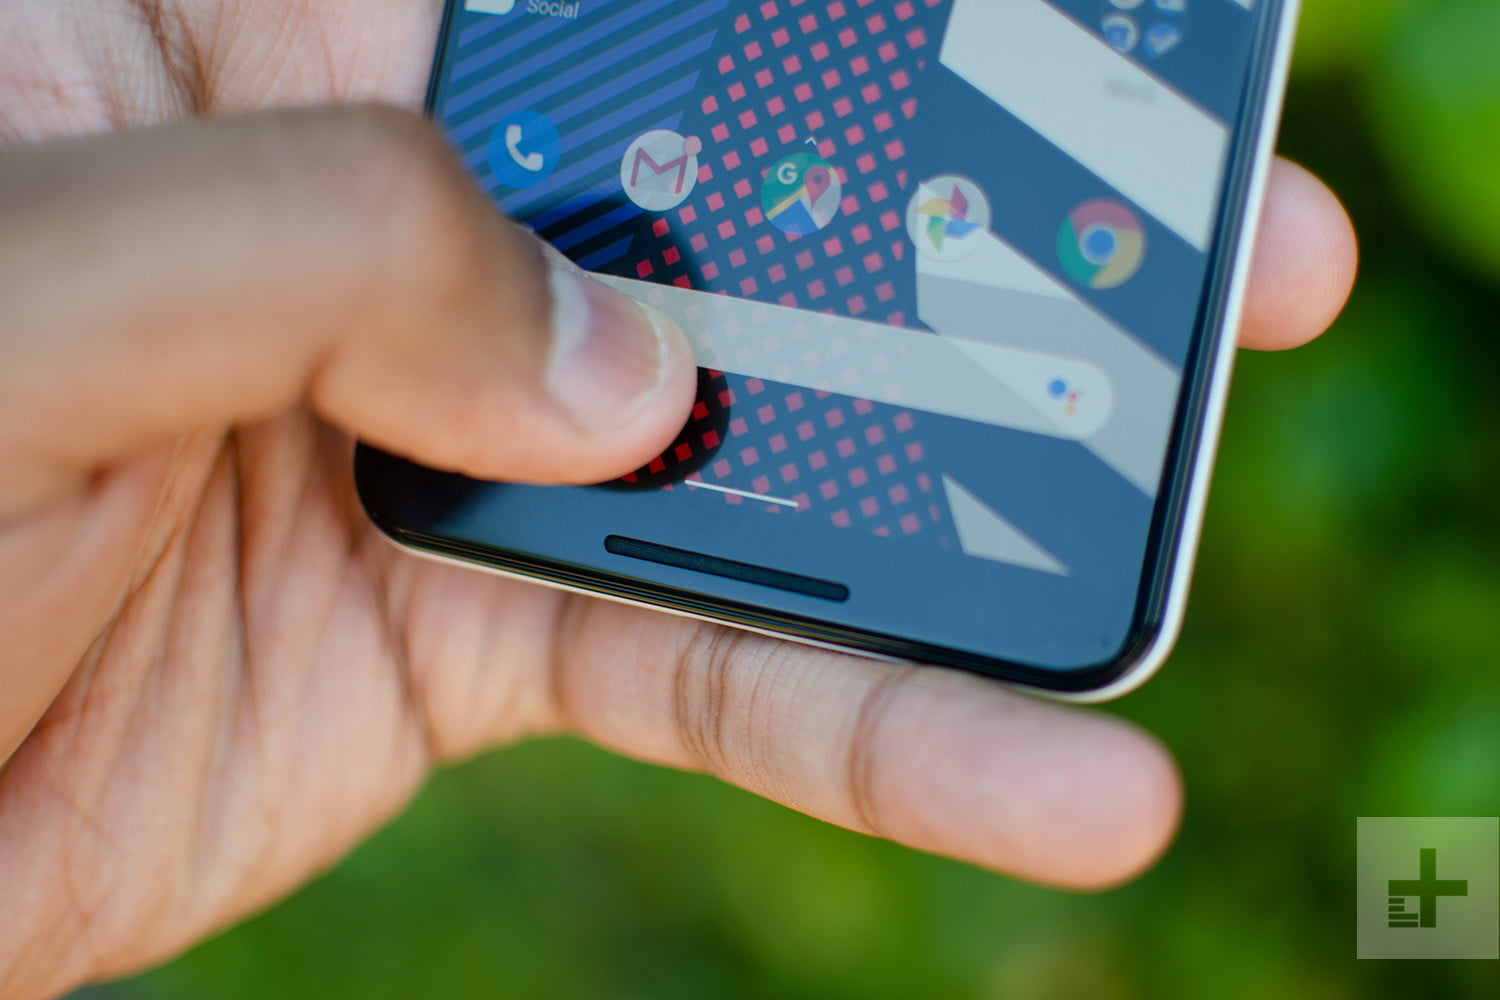 Android development trends in 2019